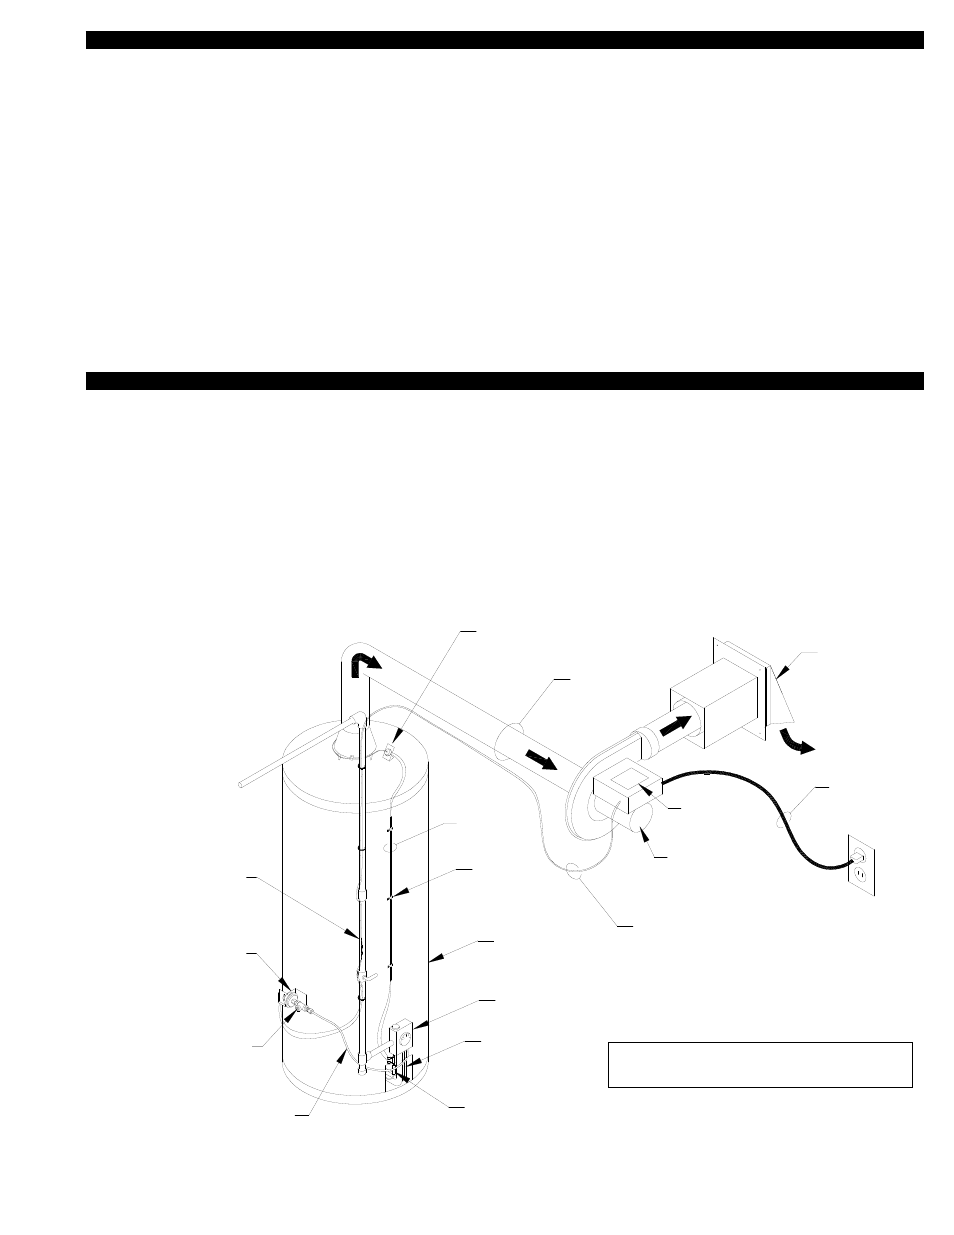 Tjernlund Vp 2f 3f Airotronics Timer 8504140 Rev A 11 User Furnace Spill Switch With Wiring Diagrams Manual Page 3 15